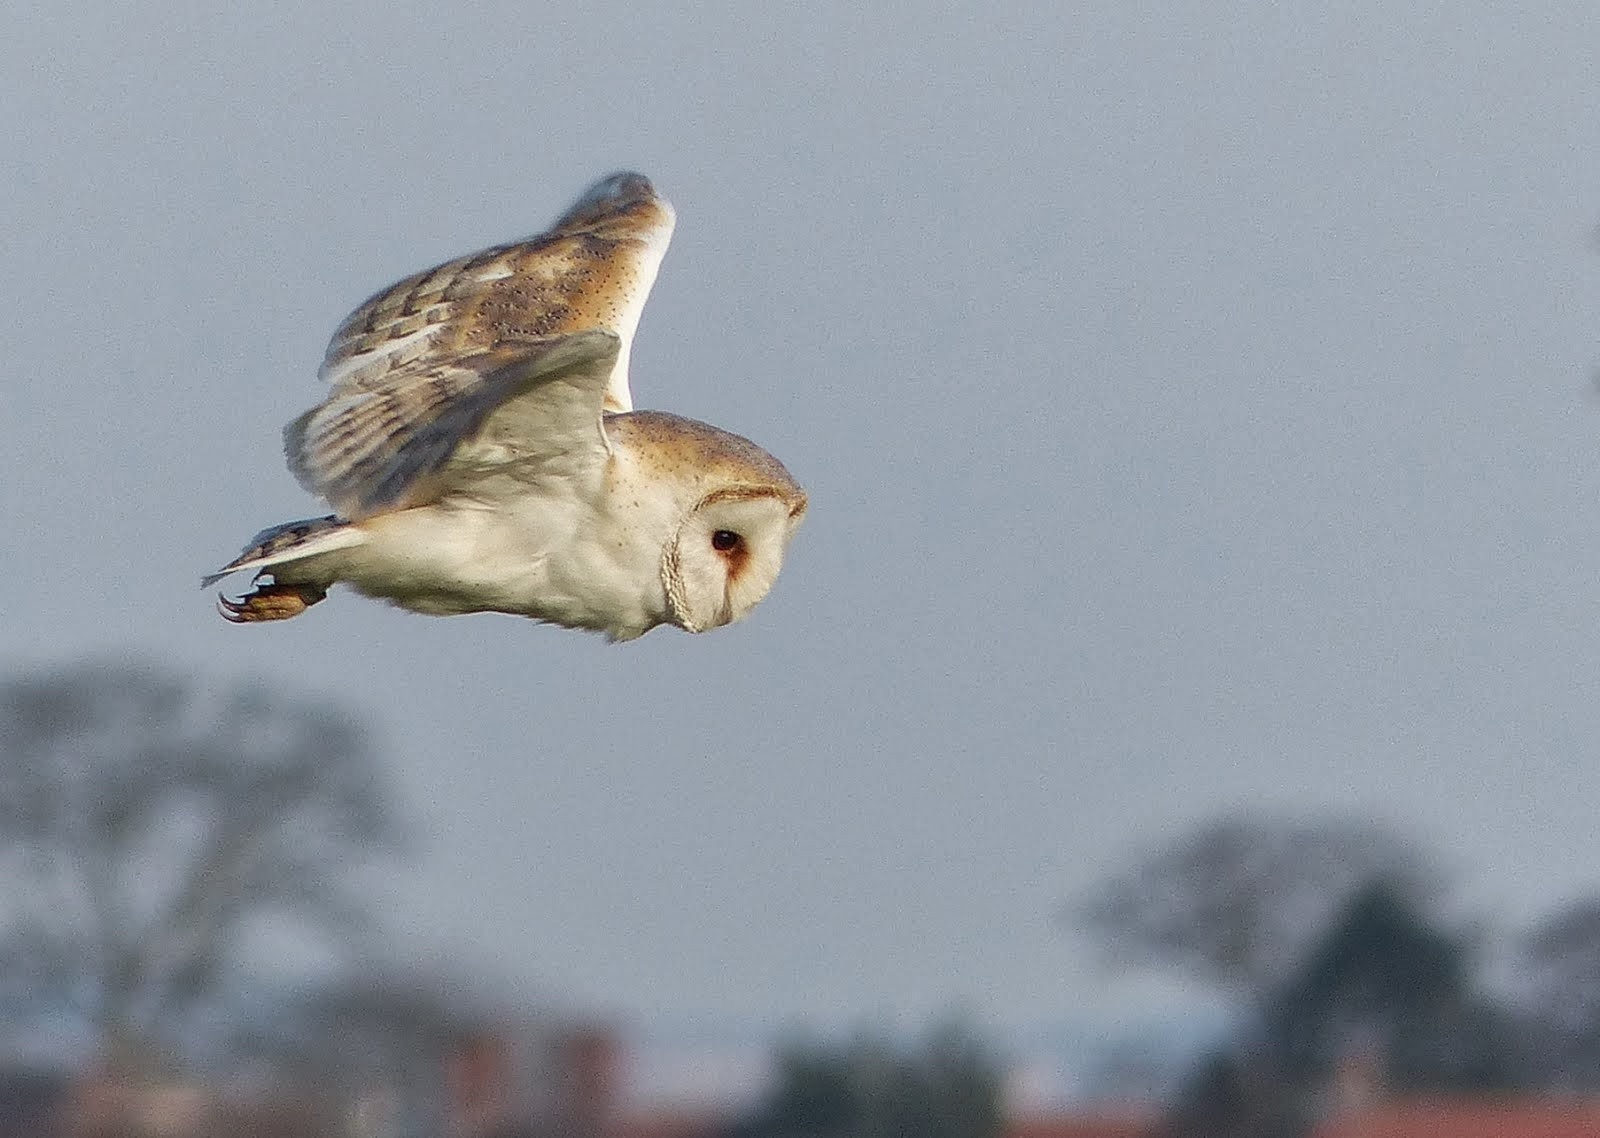 Barn Owl on my local patch